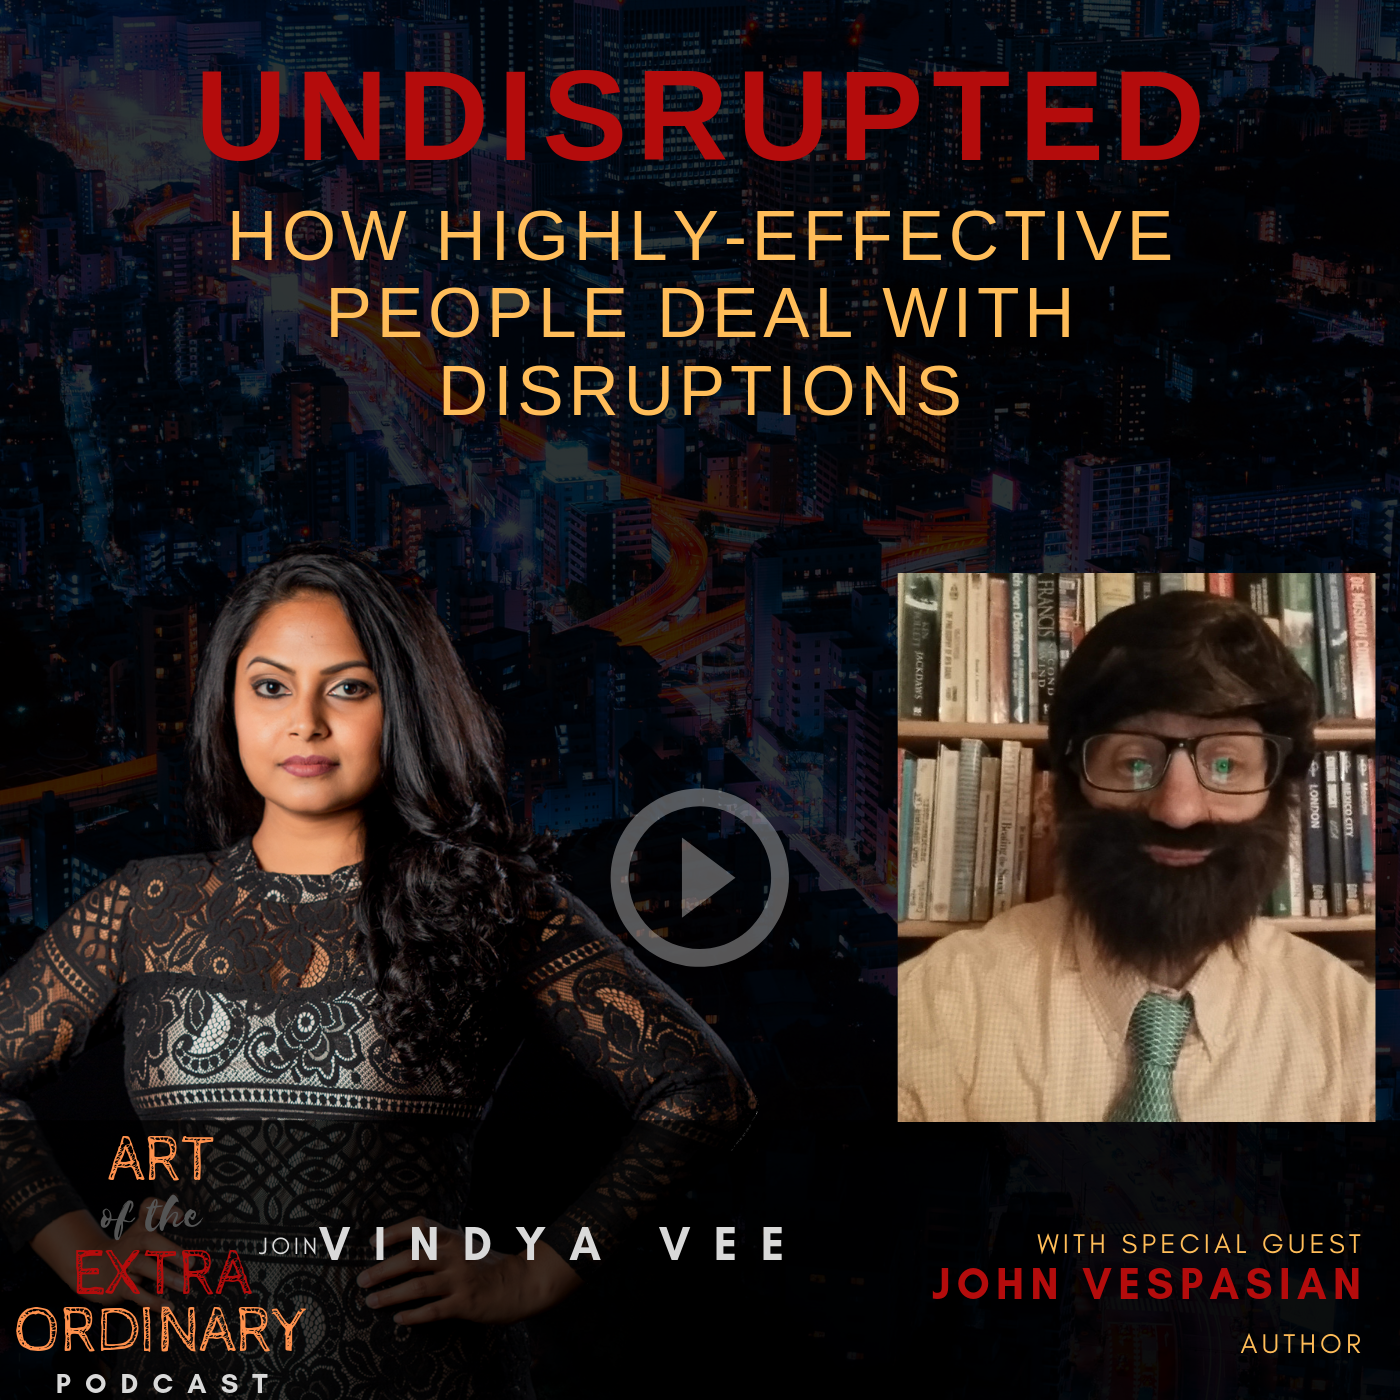 Undisrupted: How highly-effective people deal with disruptions show art